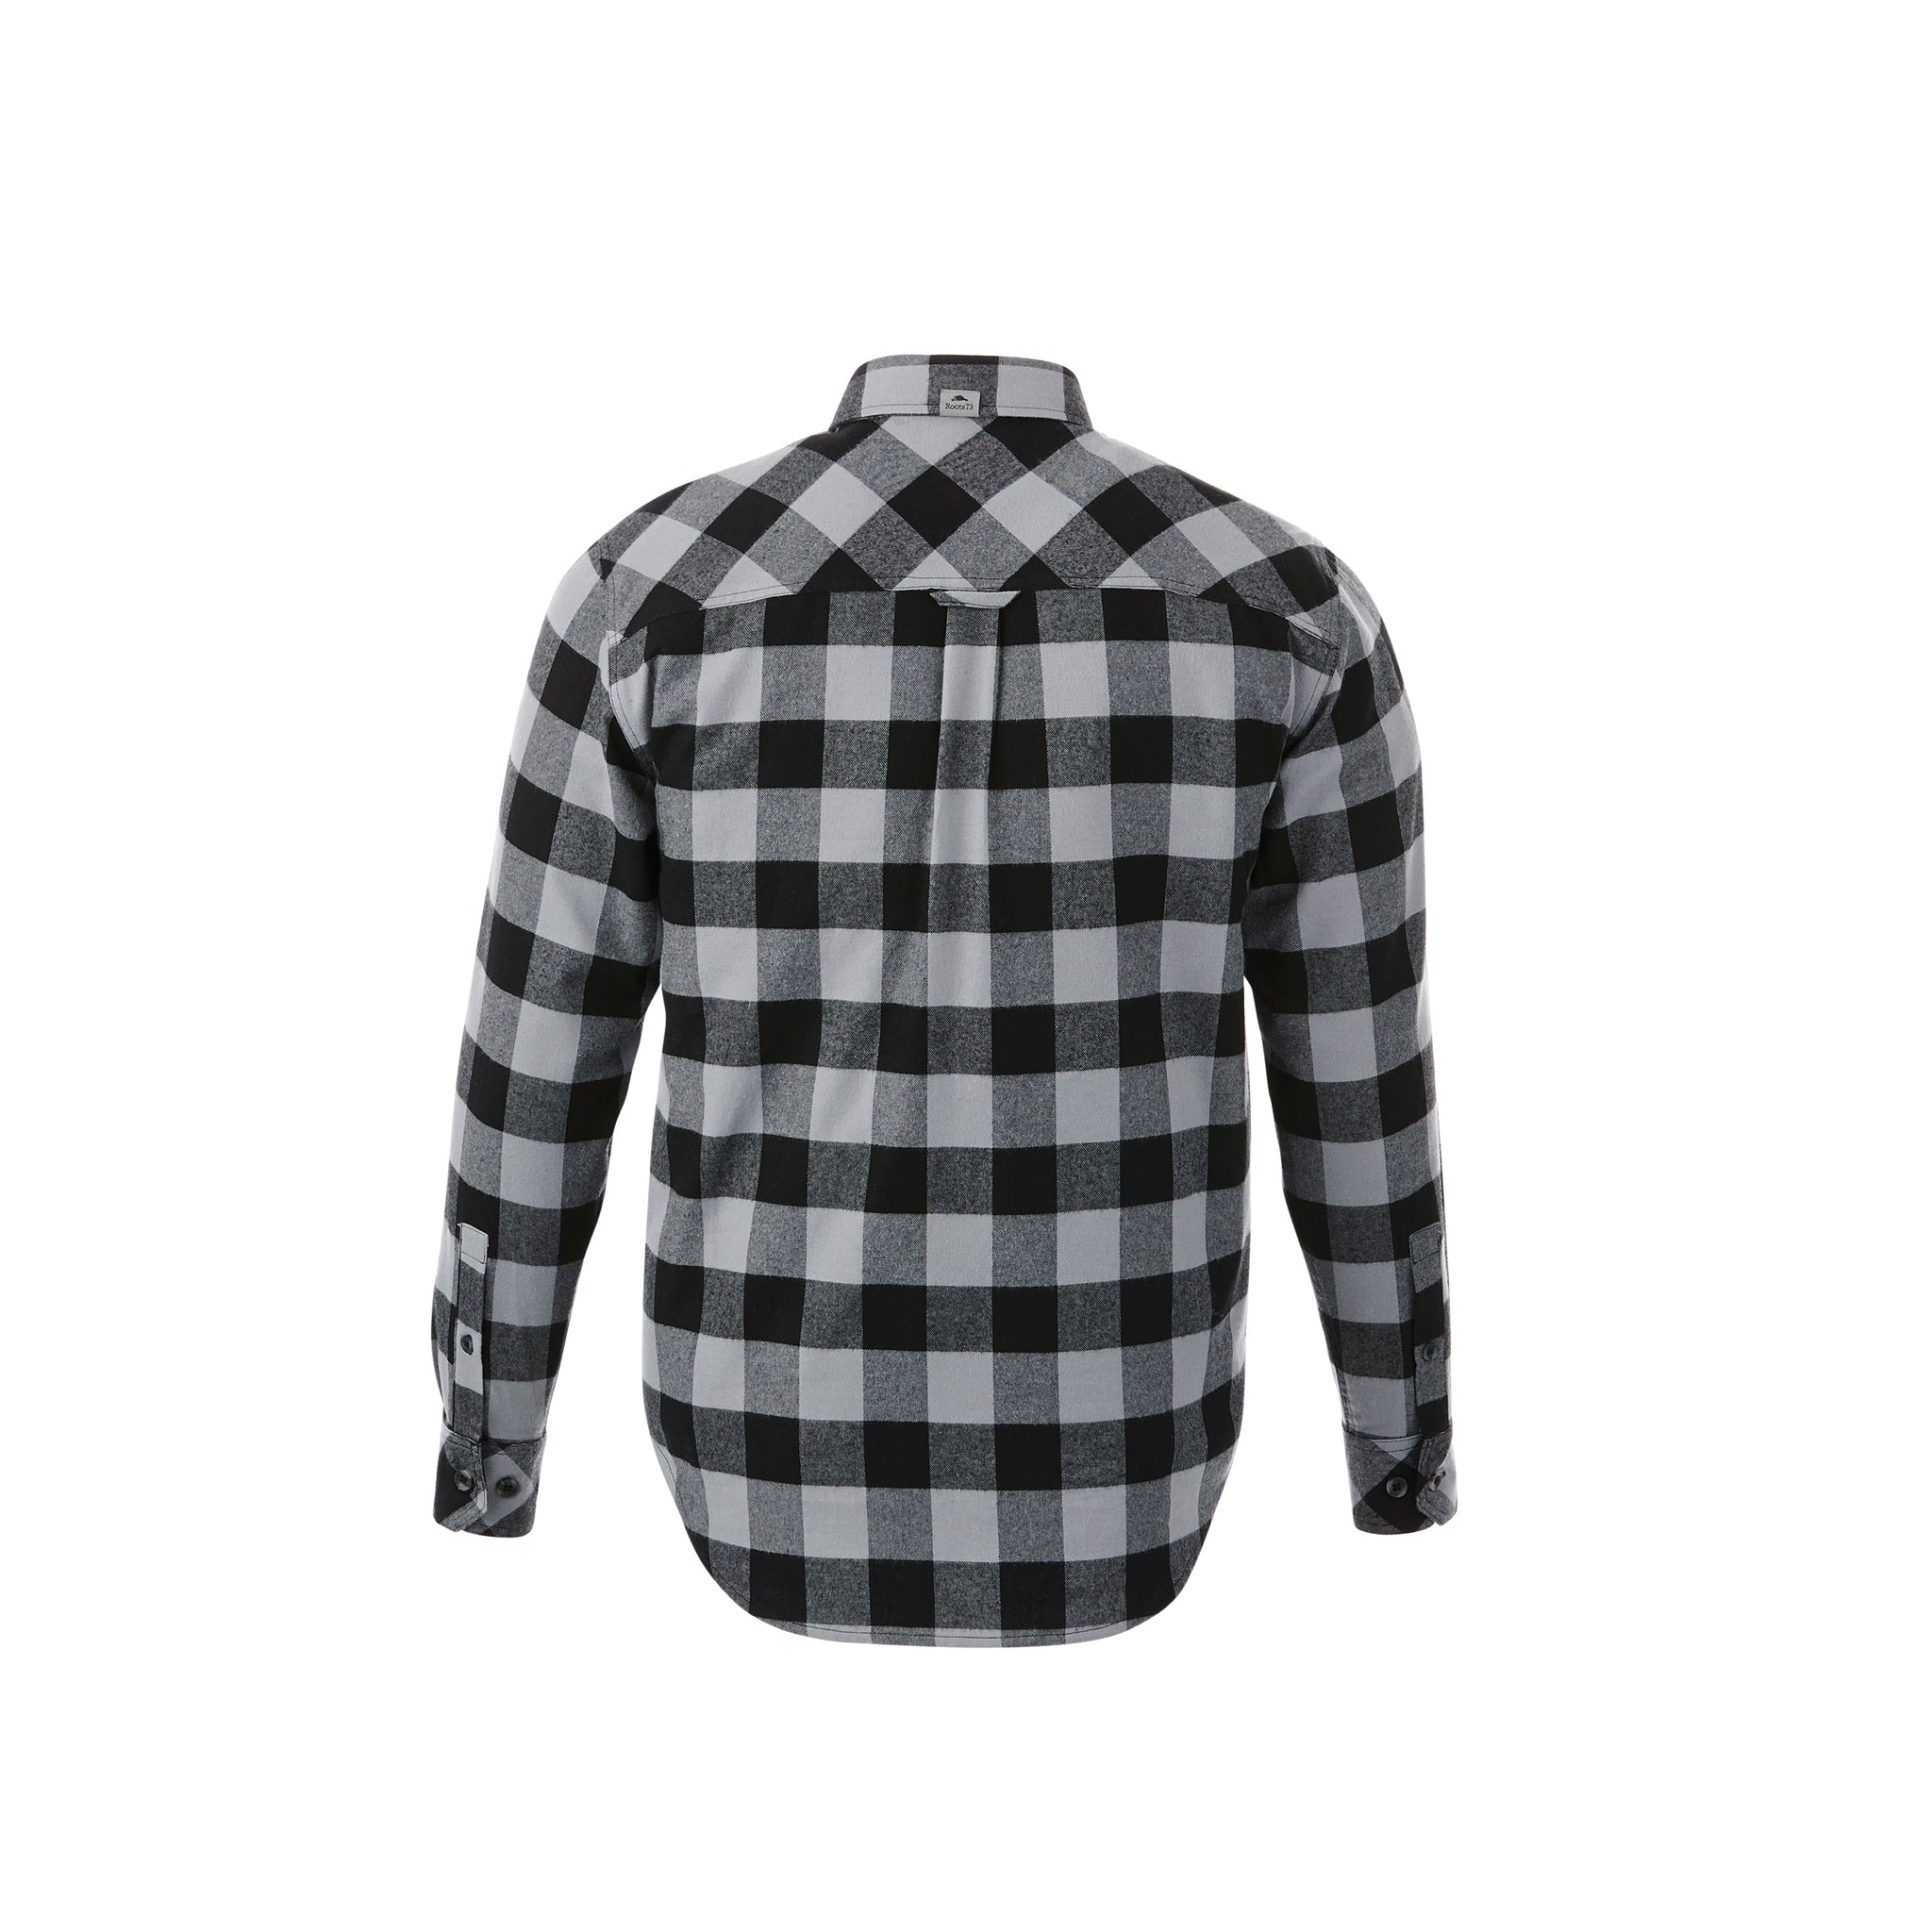 ROOTS73 MEN'S SPRUCELAKE PLAID LONG SLEEVE SHIRT